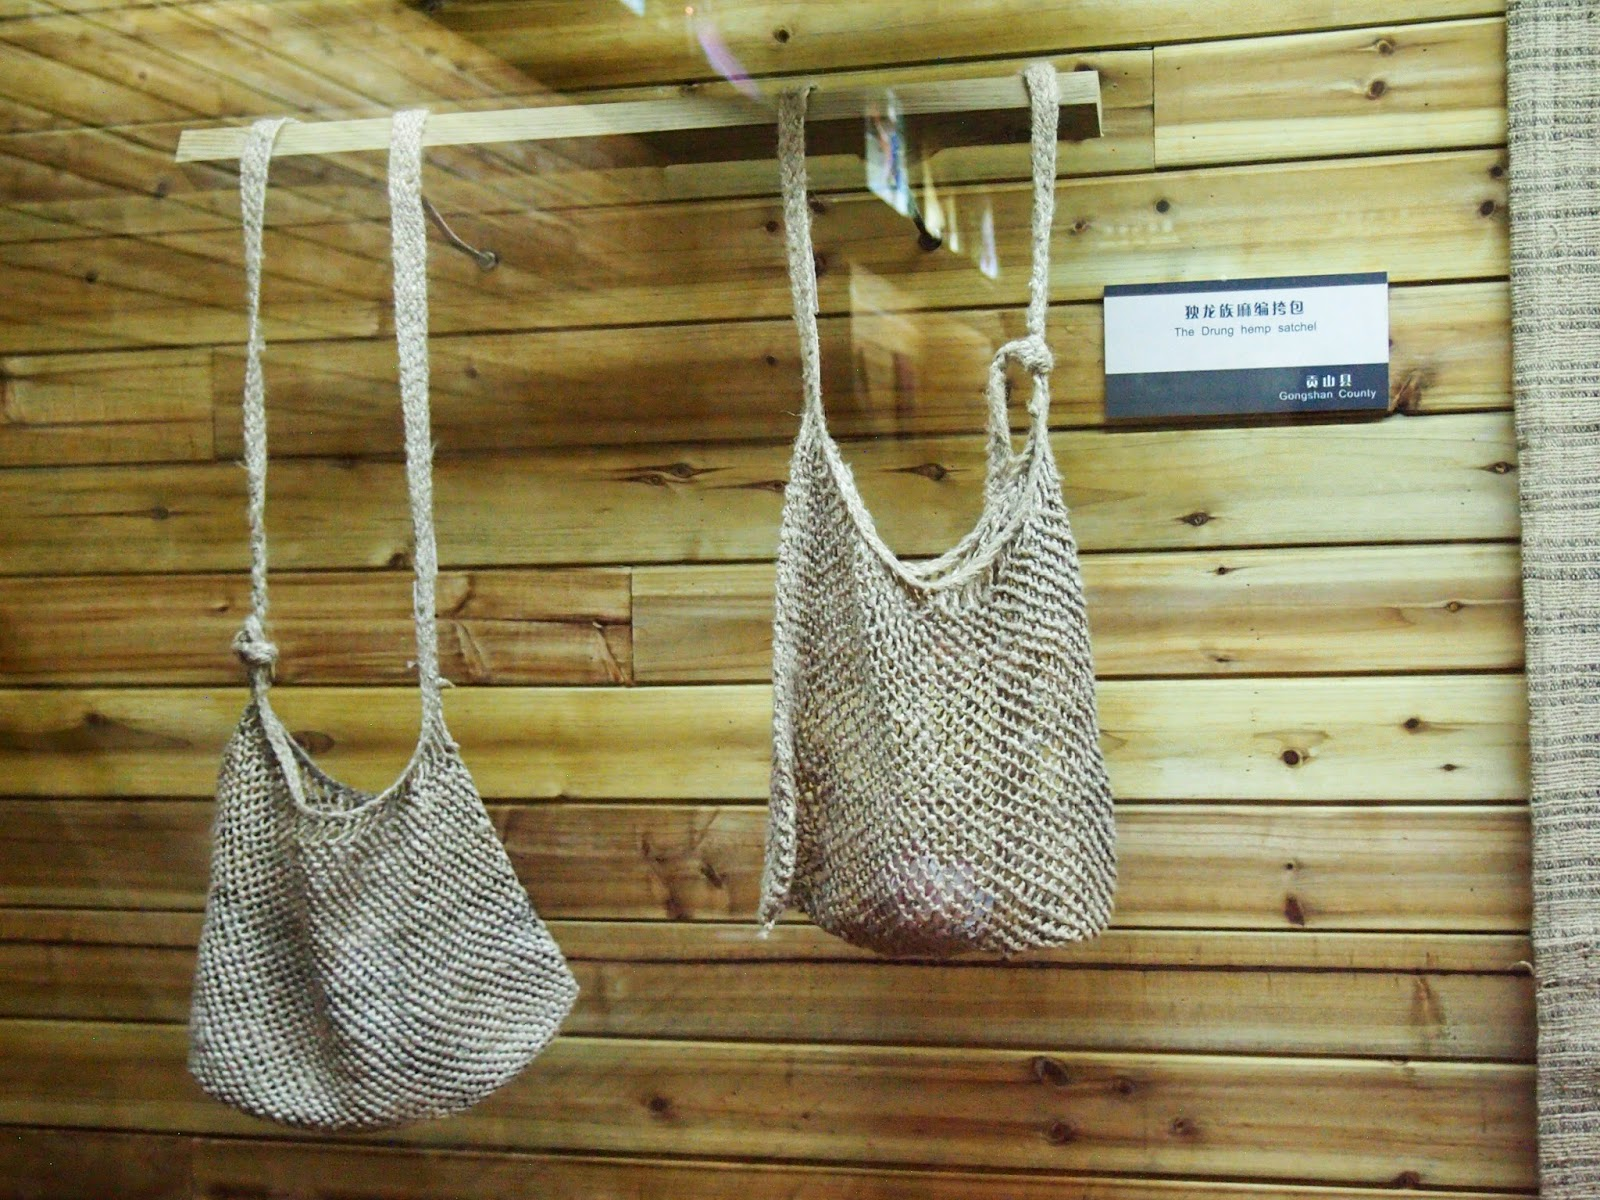 woven bags from the Yunnan Nationalities Museum